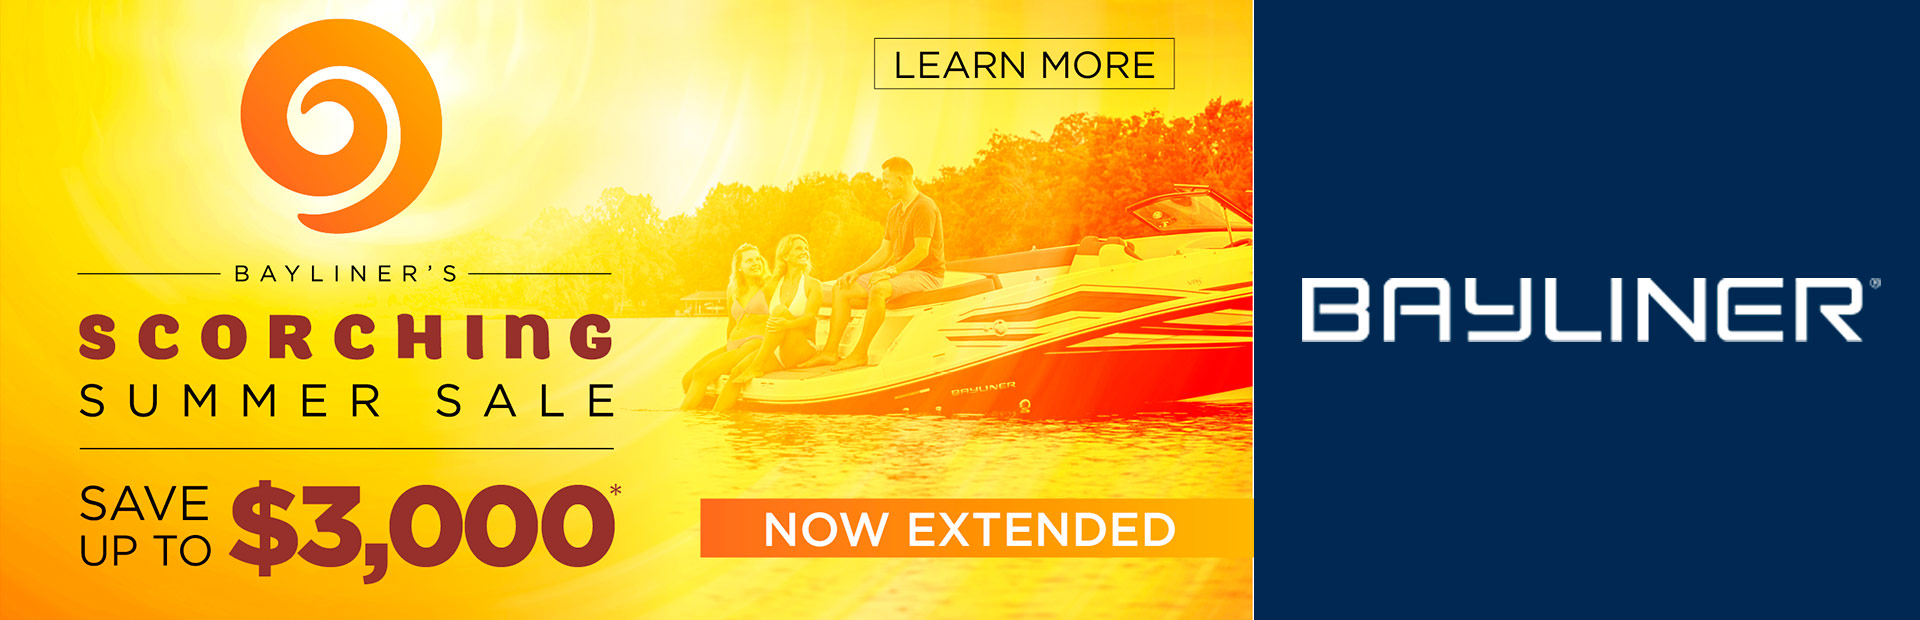 Bayliner: Scorching Summer Sale